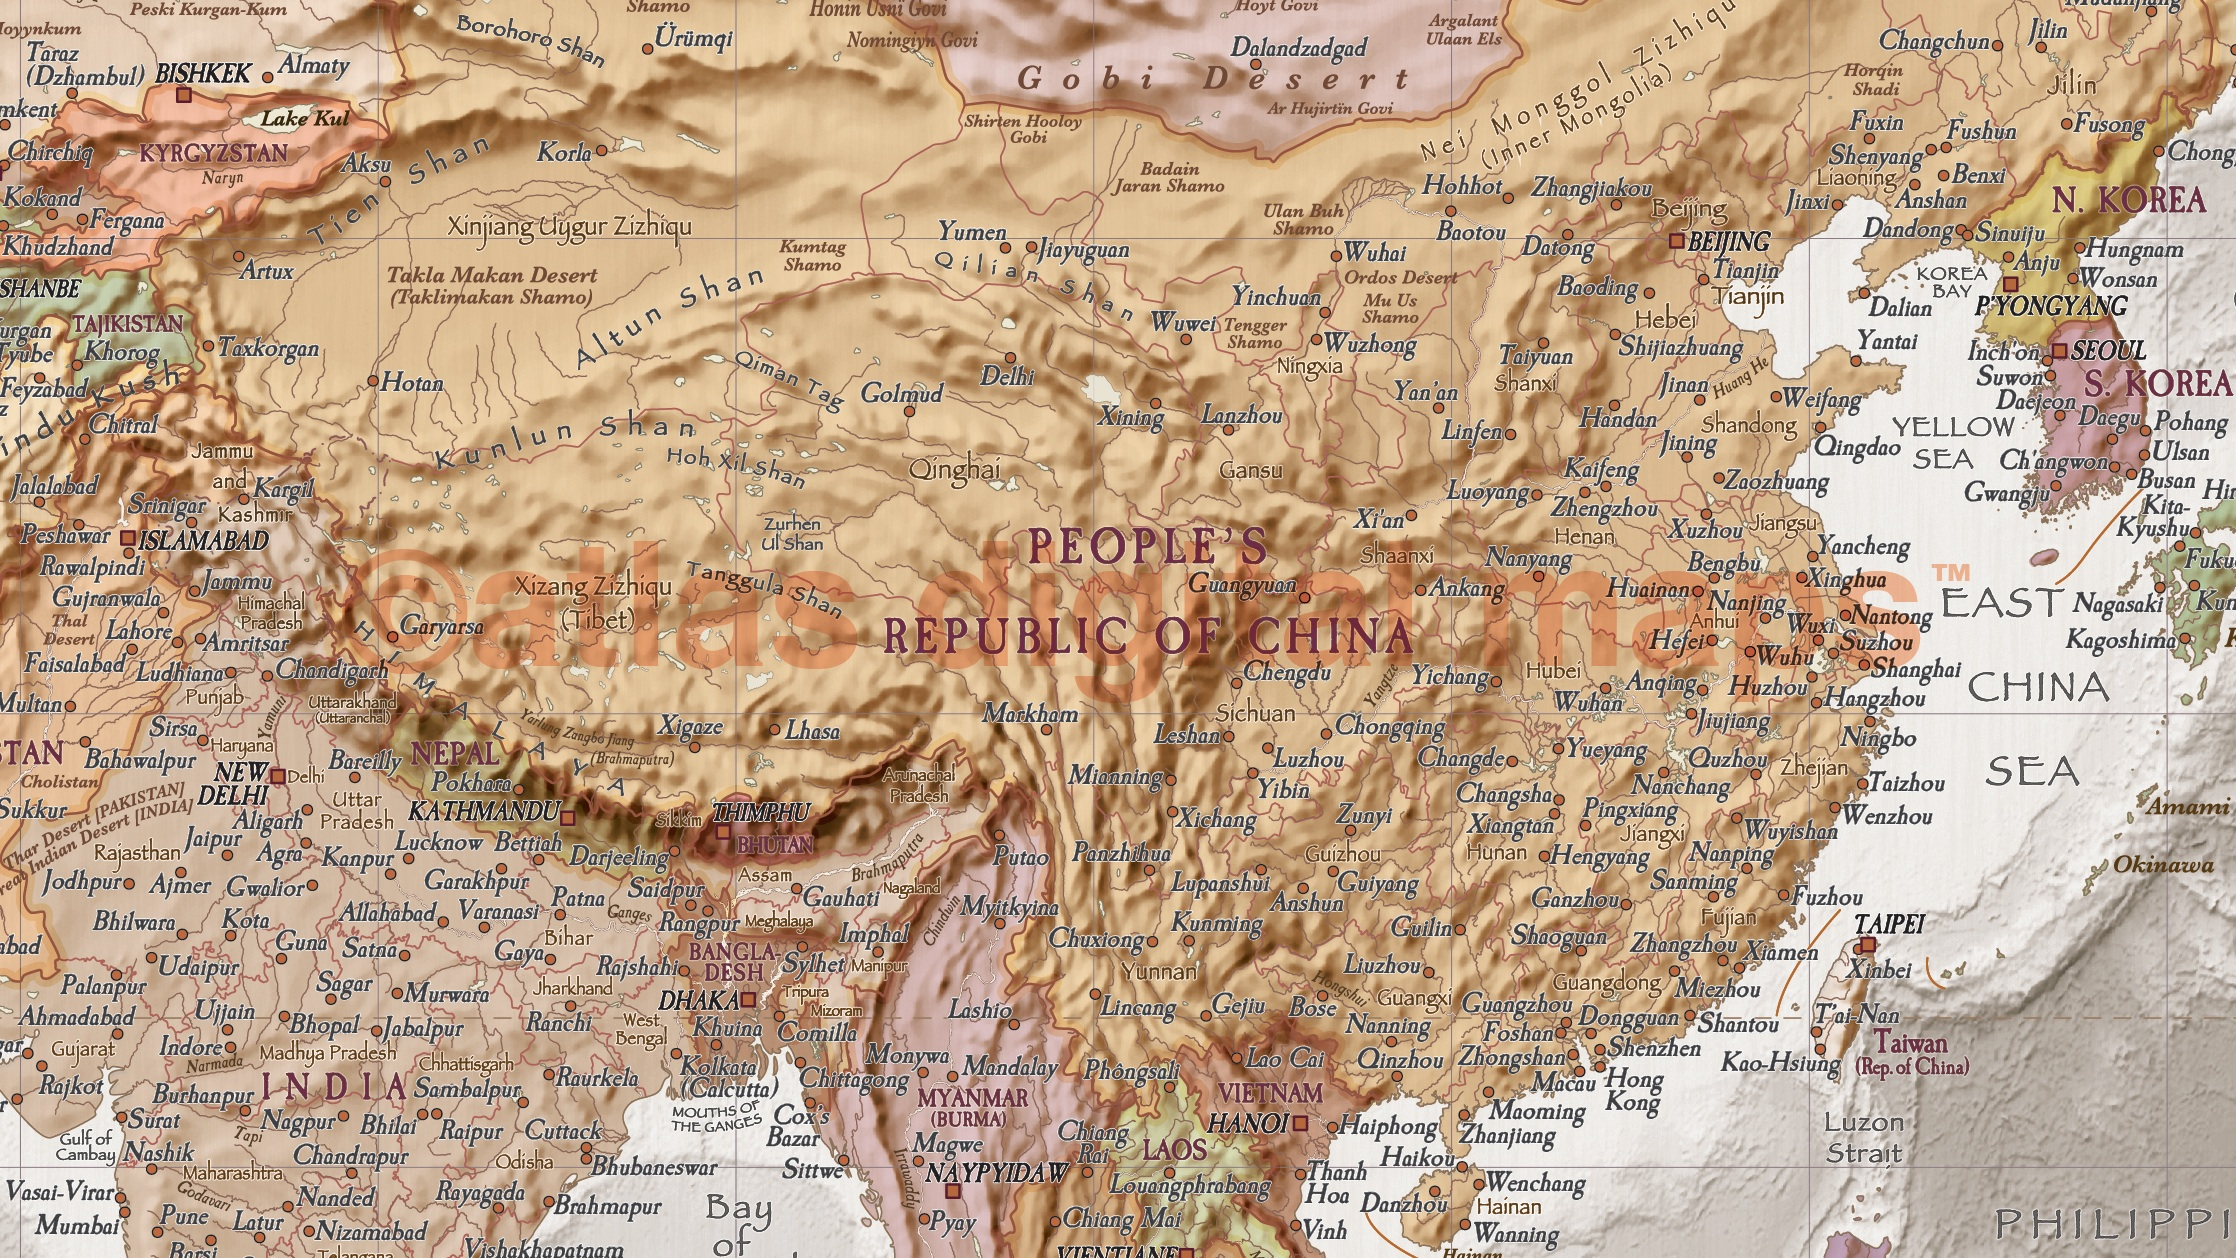 World wall map canvas 60 x 38 framed canvas antique style stone world map size 60w x 38d gumiabroncs Images